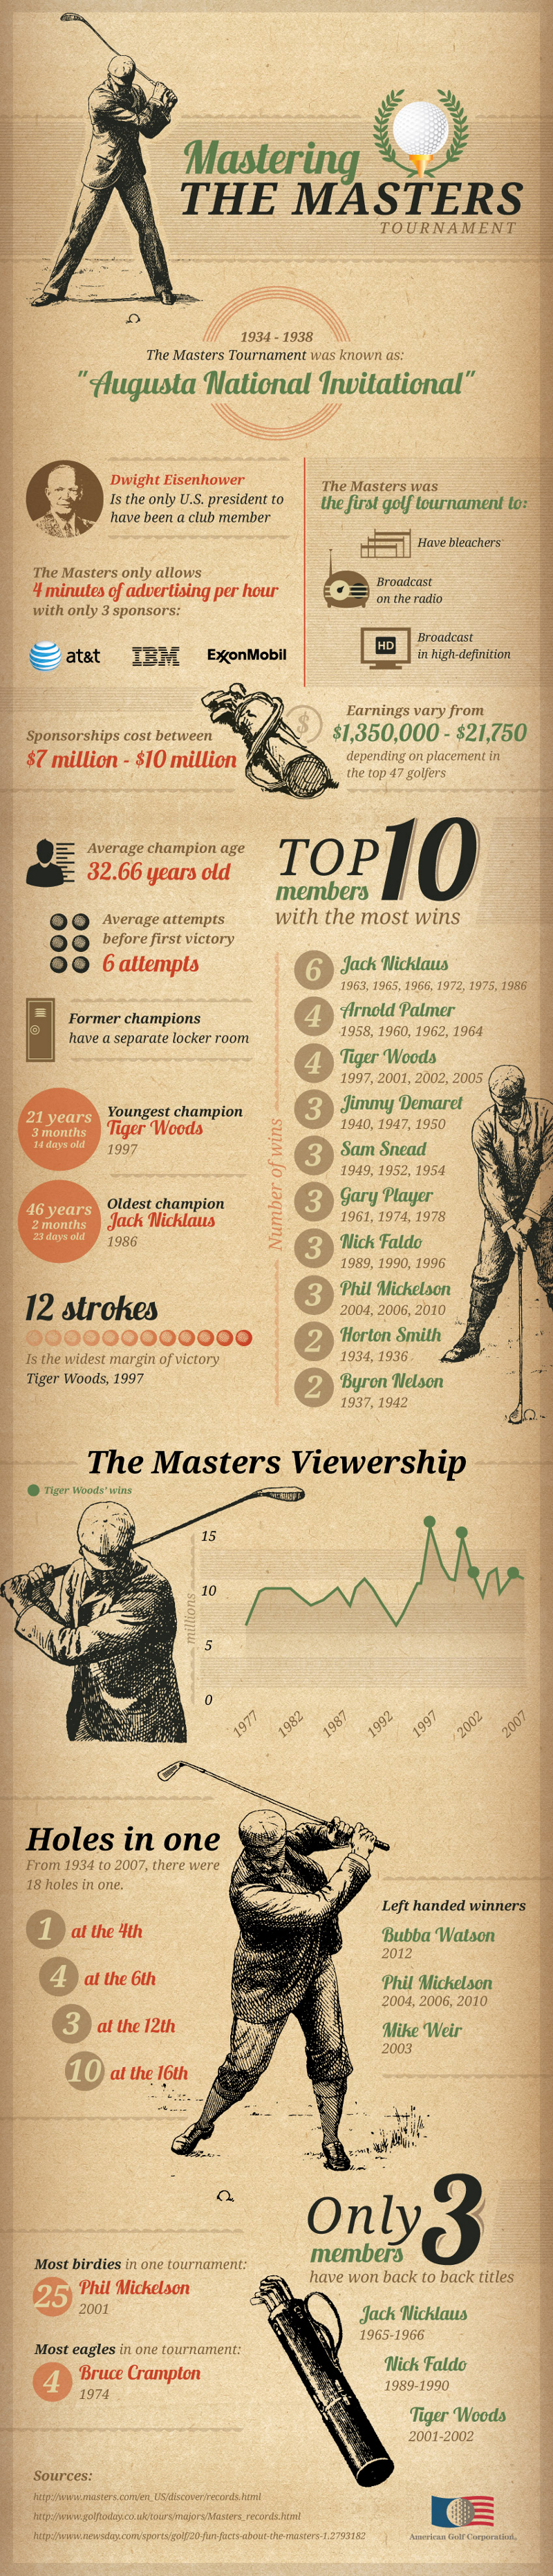 Golf Tournament Facts About the Masters